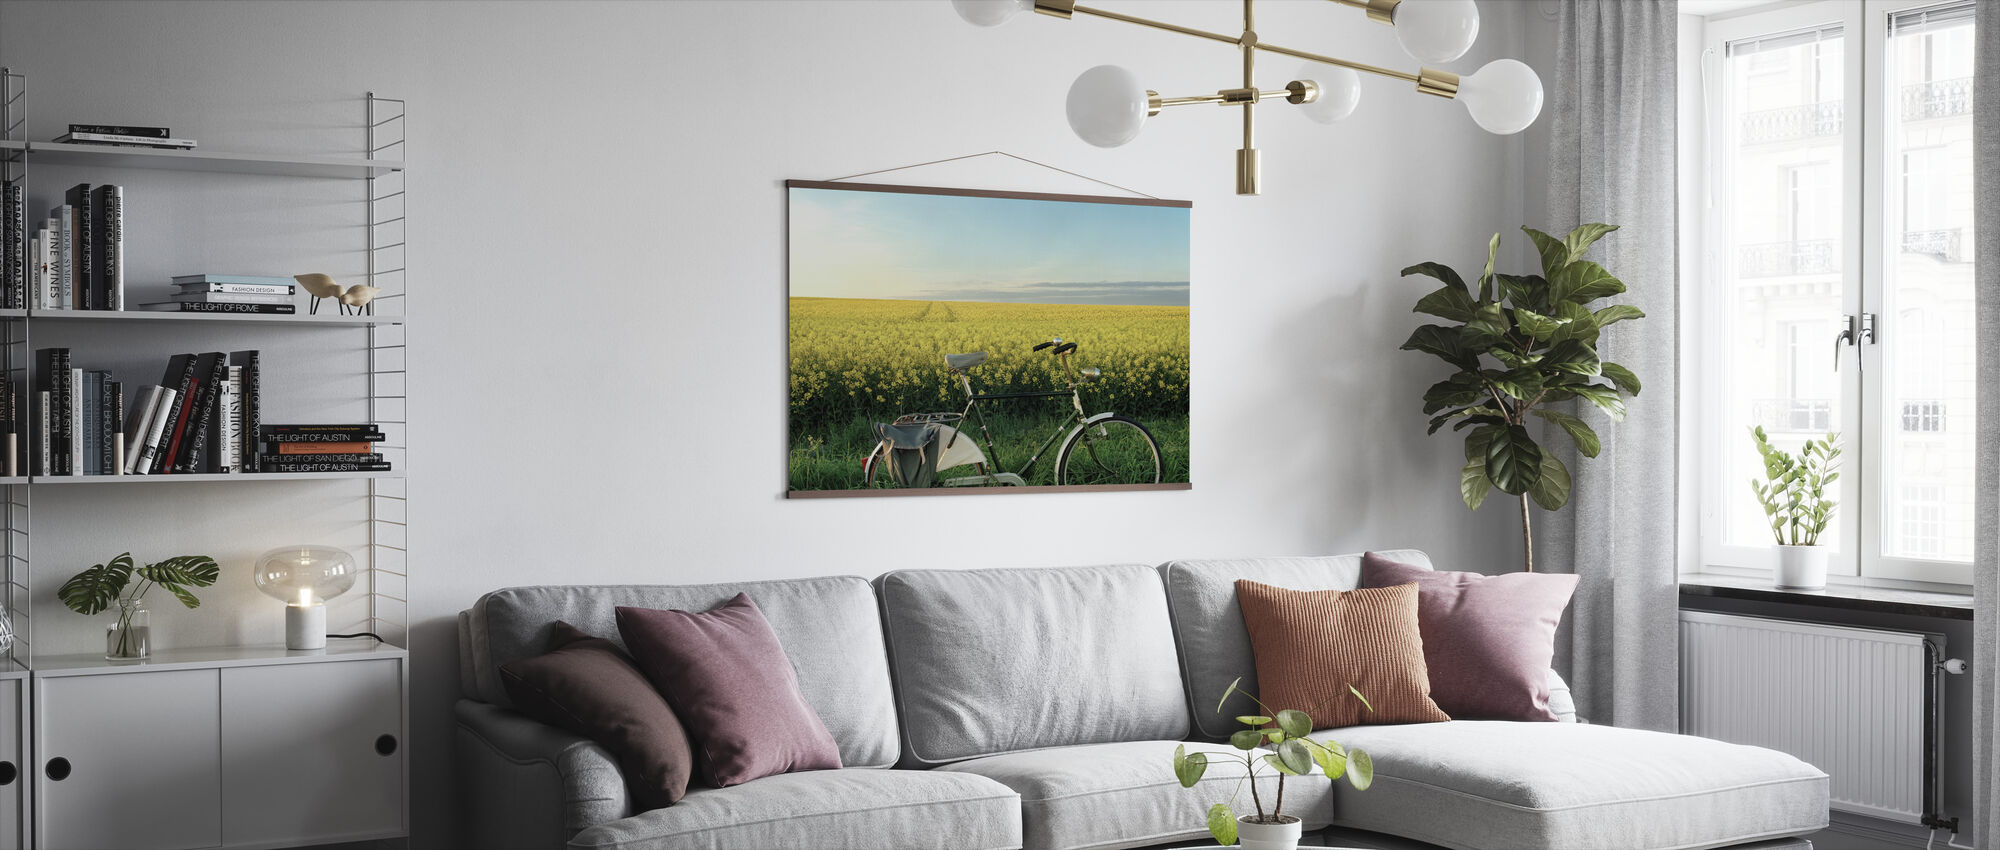 The End of the Lane - Poster - Living Room